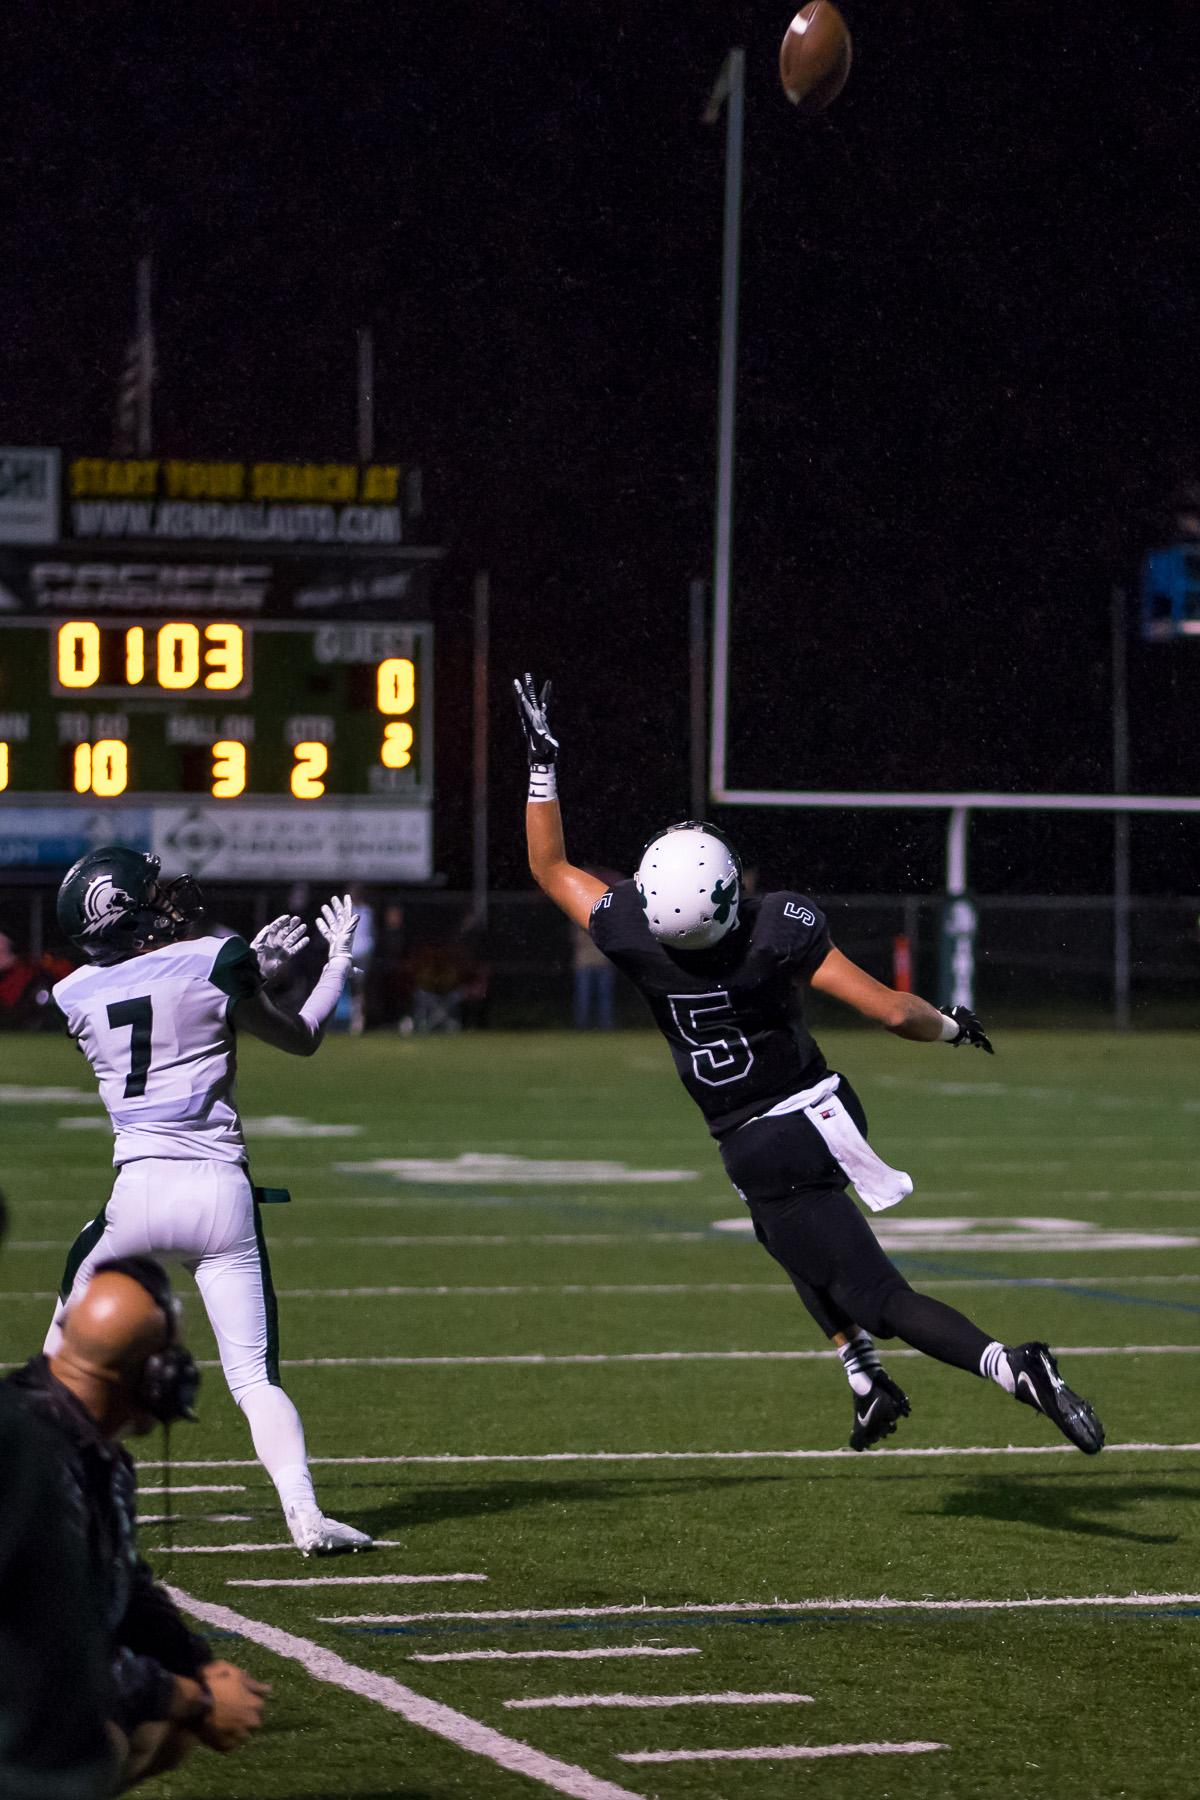 Sheldon's Patrick Herbert (#5) and West Salem's Austin Ailstock (#7) compete for a reception. On a rainy Monday evening, Sheldon defeated West Salem at home 41 – 7. The game had been postponed until Monday, September 18, due to unhealthy levels of smoke in the air caused by nearby forest fires. Photo by Kit MacAvoy, Oregon News Lab